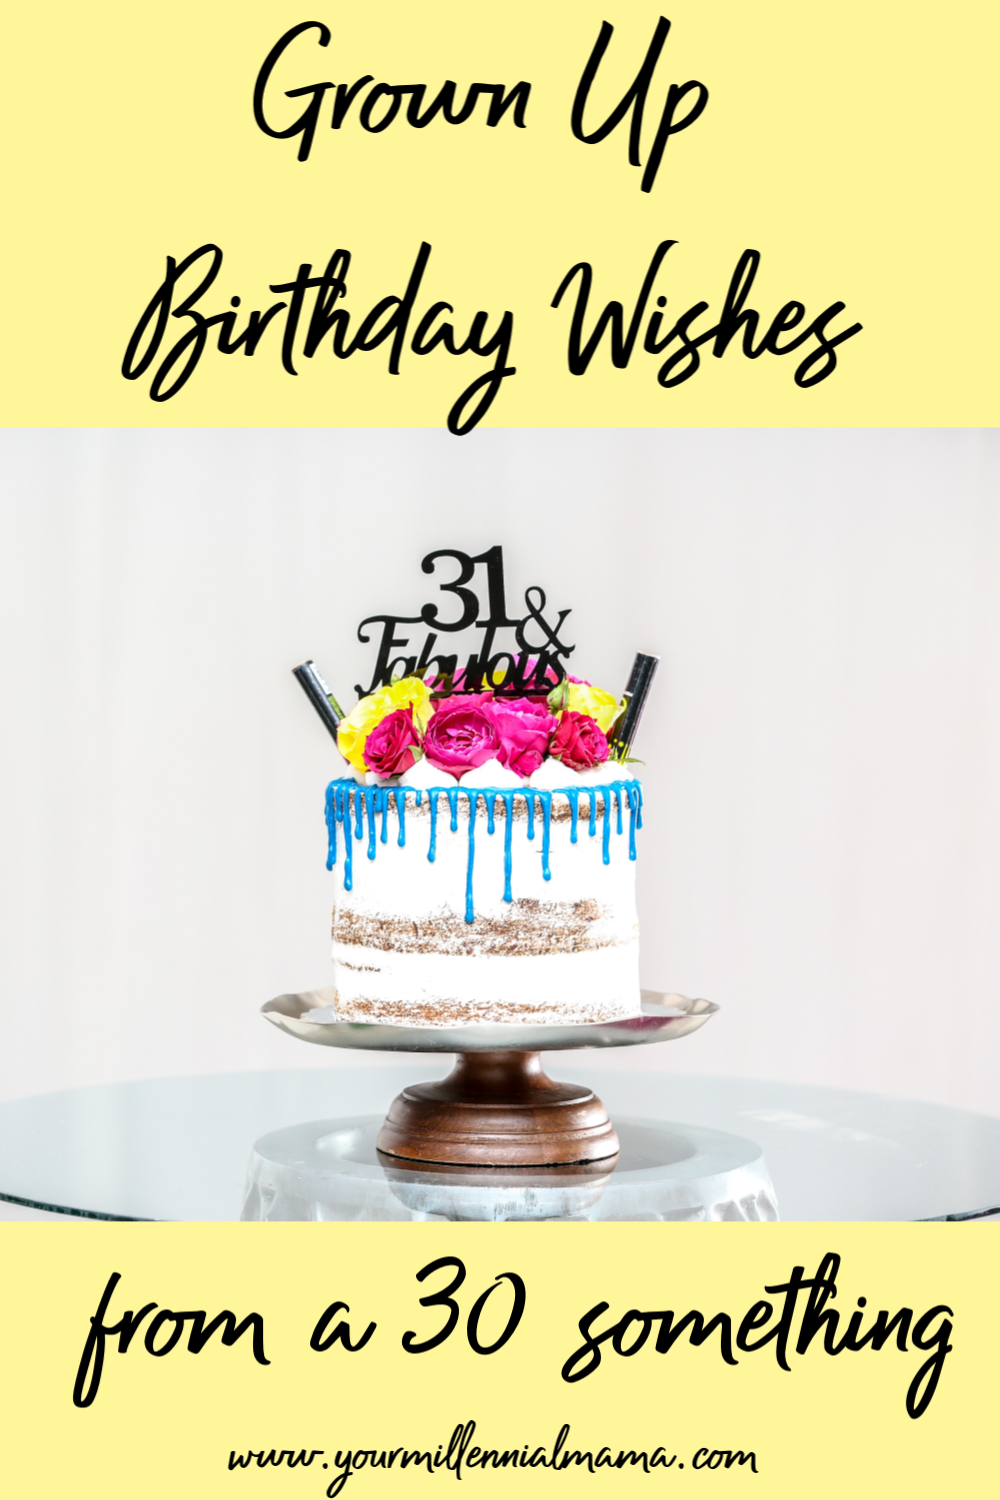 A Birthday Wish From A 30 Something Your Millennial Mama Birthday Wishes For Son Birthday Wishes Inspirational Birthday Wishes